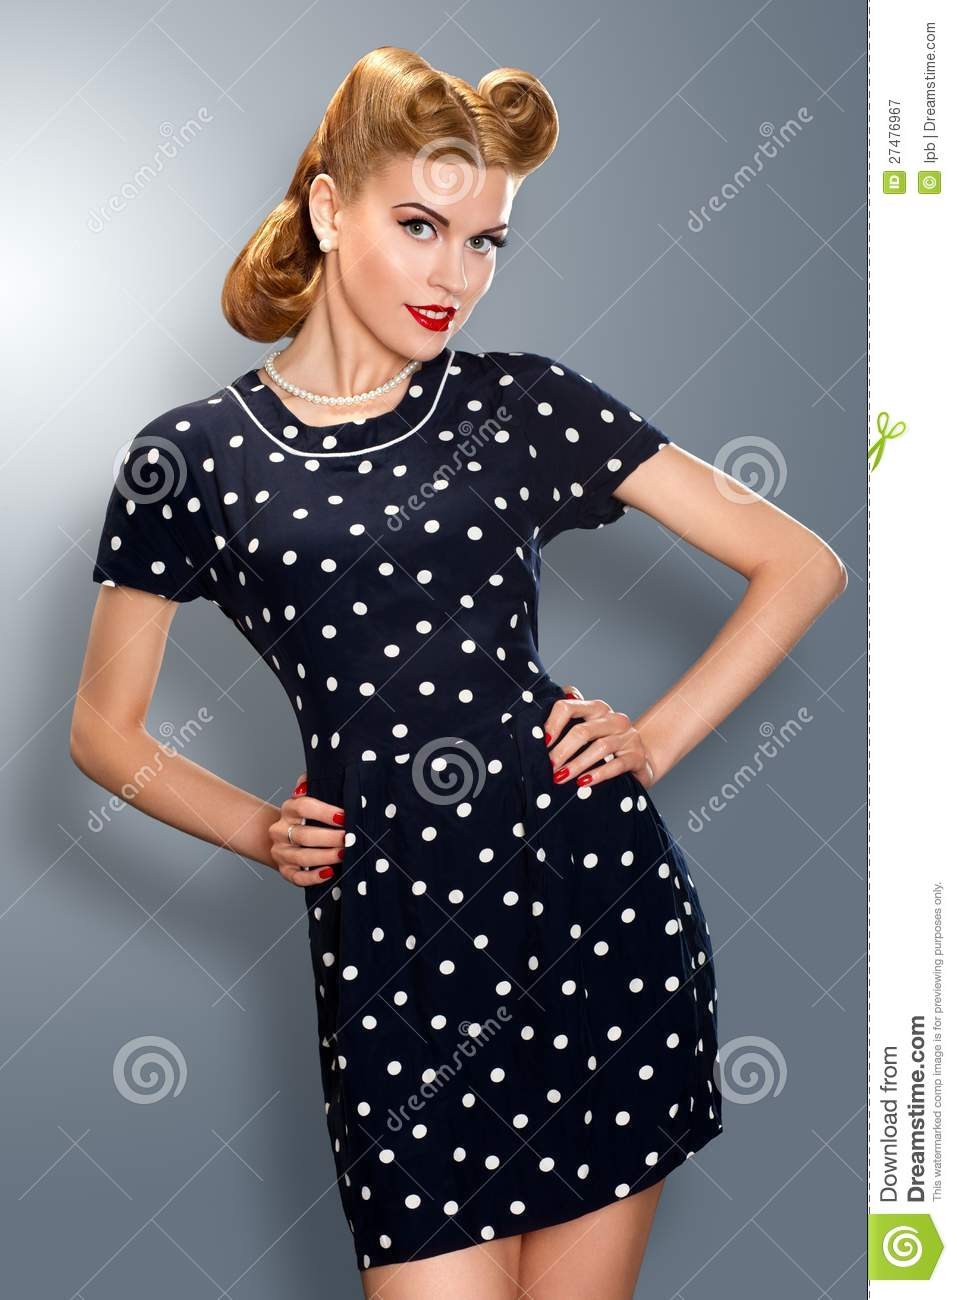 Pin-up Girl In Retro Vintage Dress Posing Royalty Free Stock ...